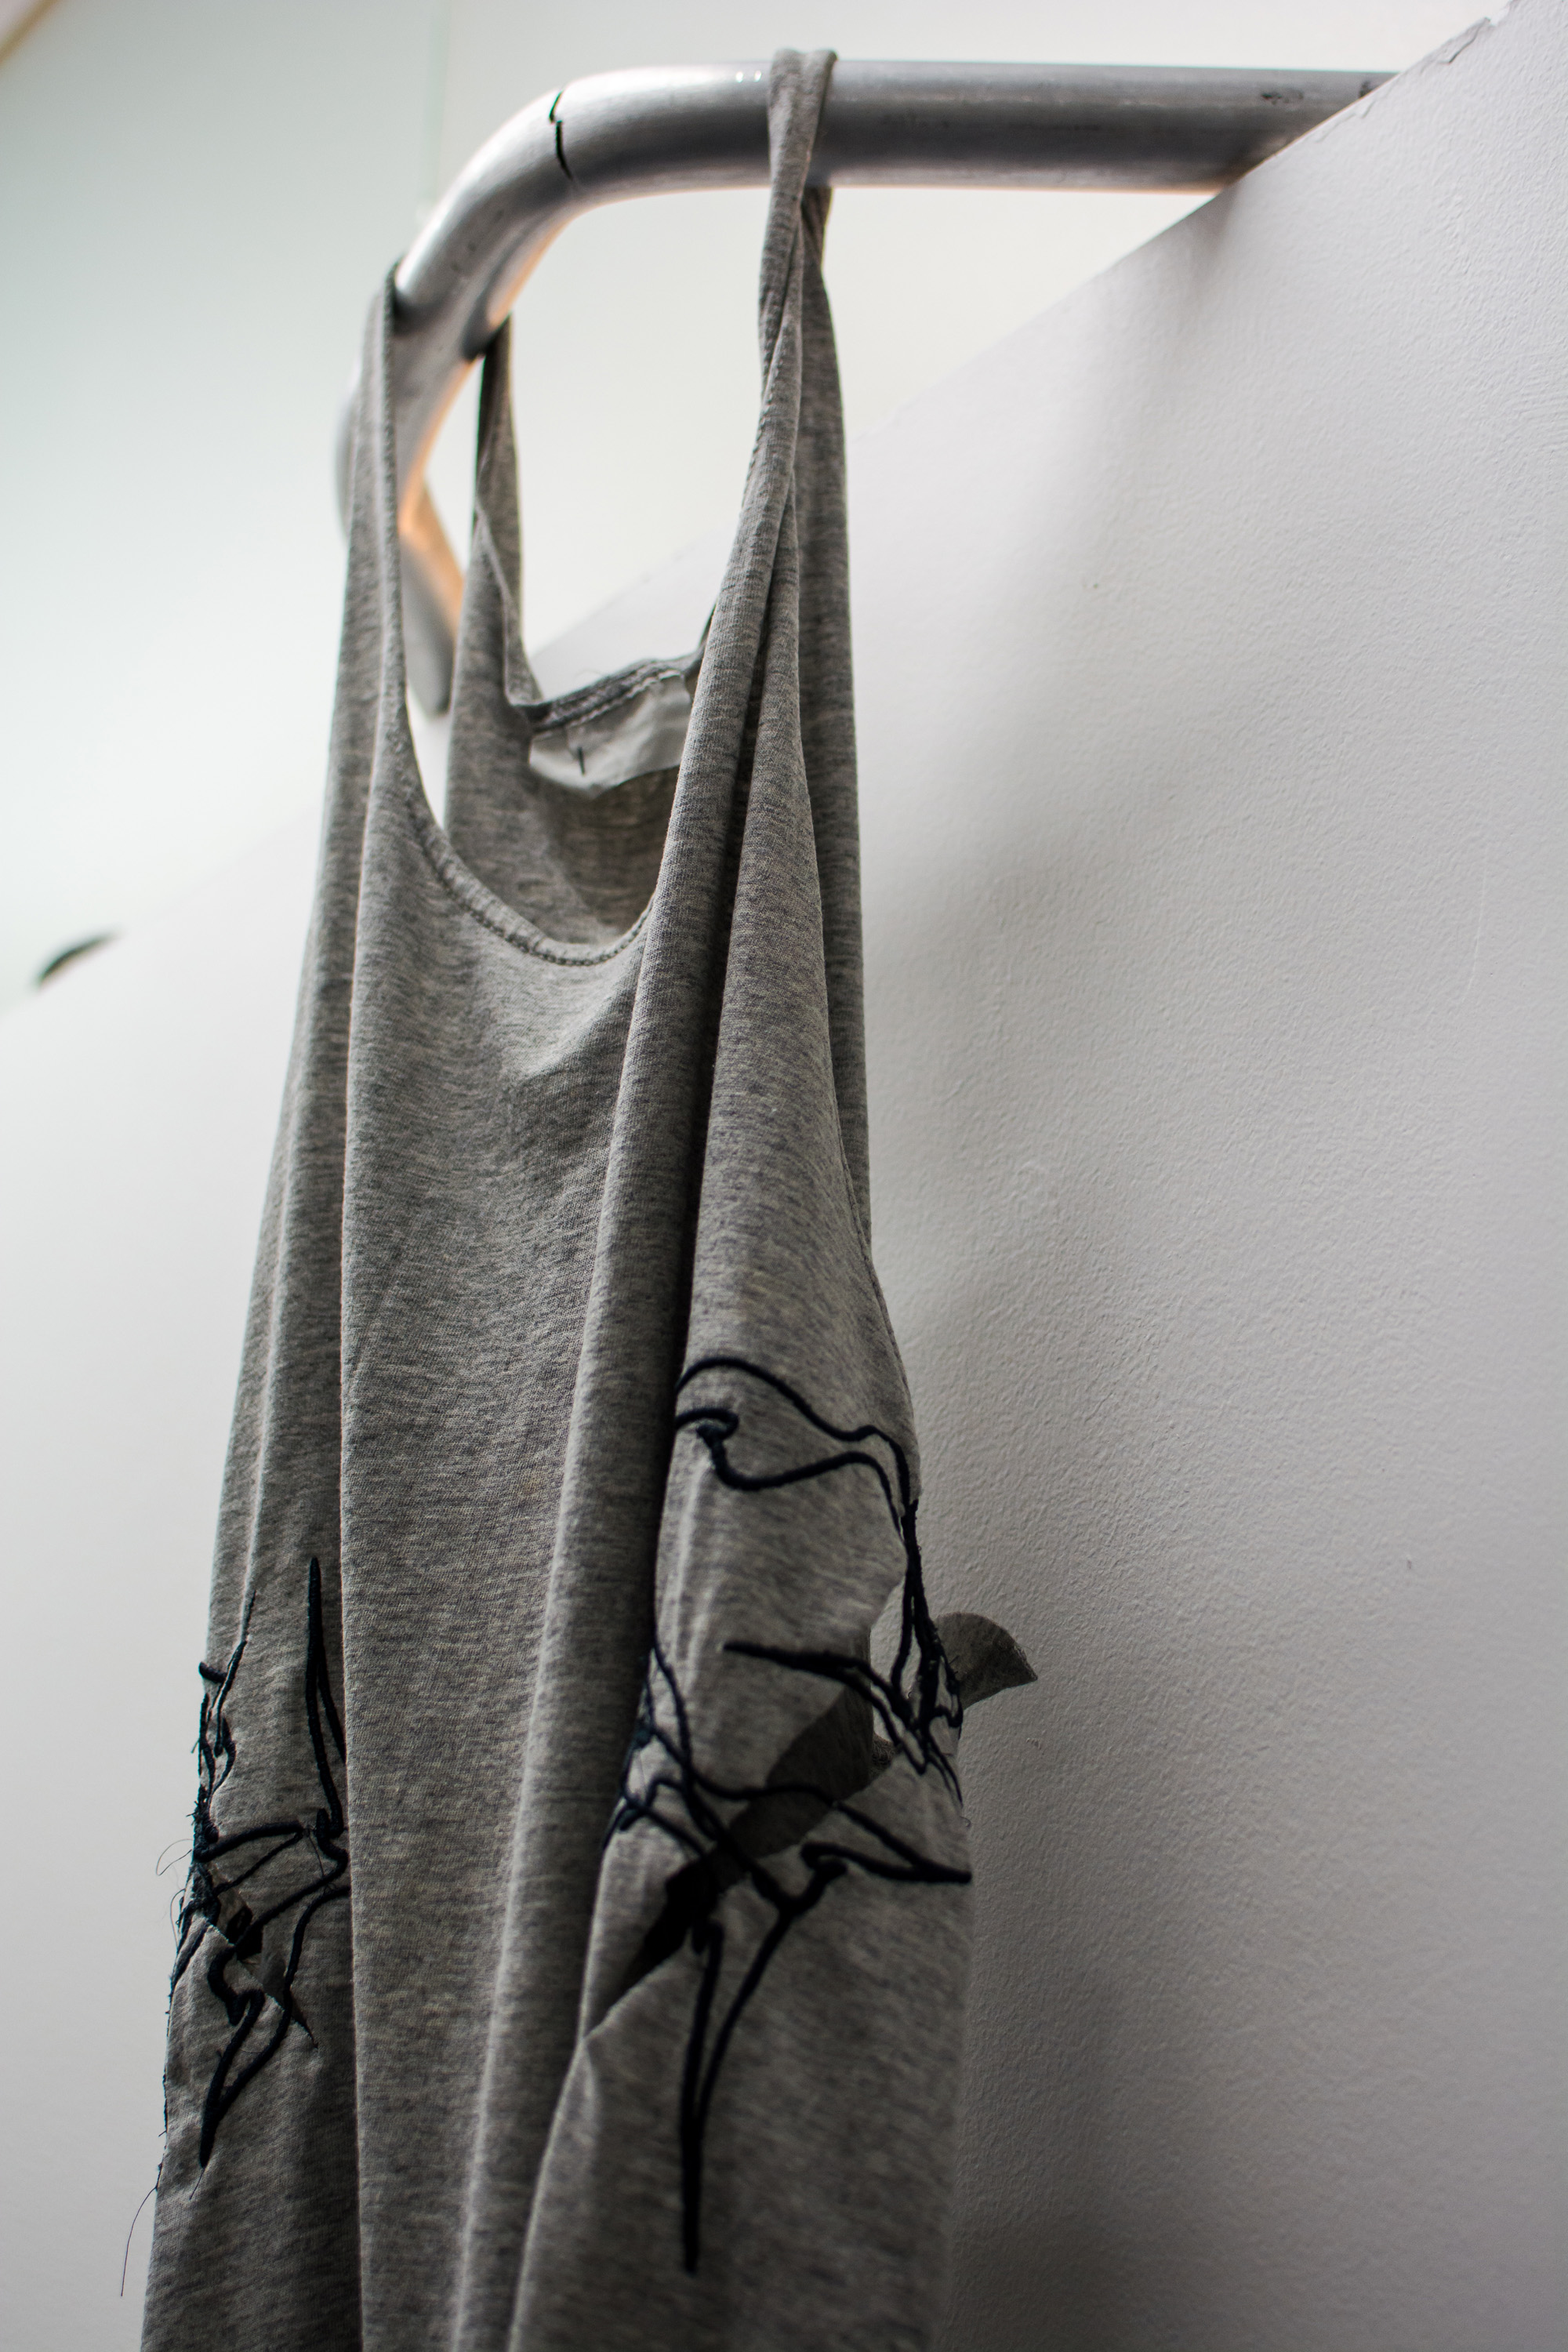 Laundered Fang (Tank Top) , 2016, Cotton, rayon embroidery thread, aluminum, hydraulic pressure